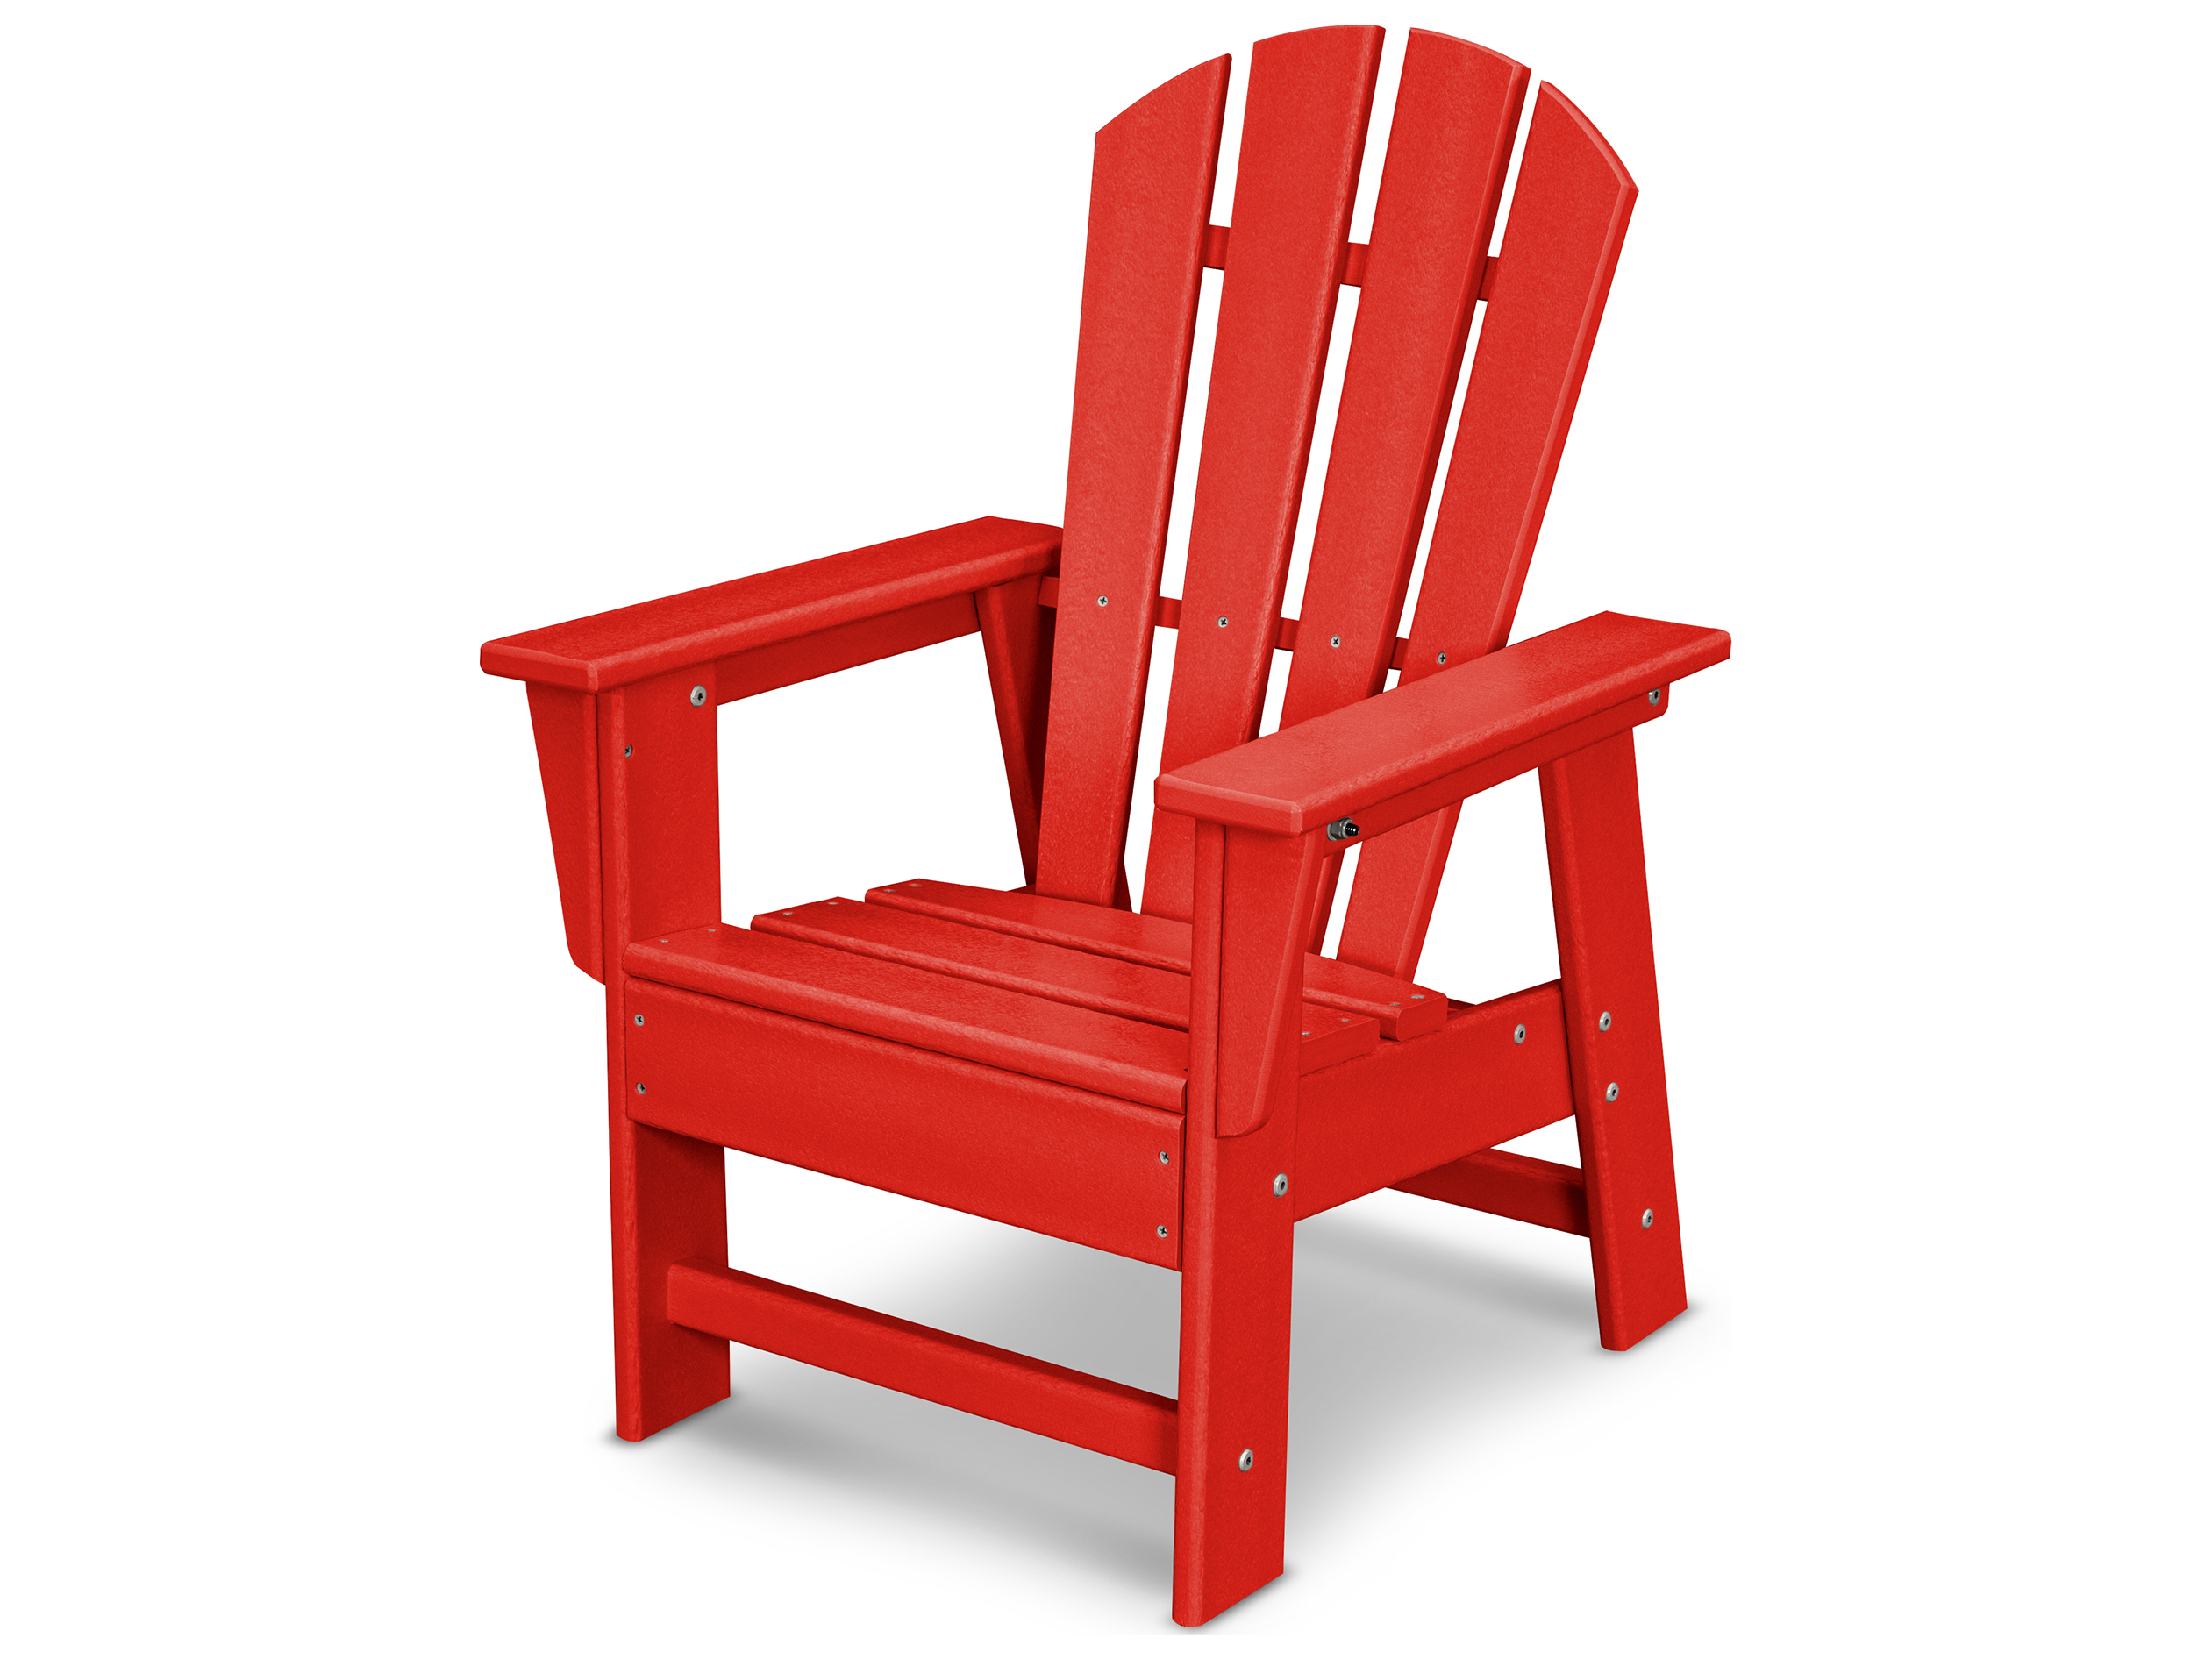 childrens plastic adirondack chairs chair design for reception polywood south beach recycled child size